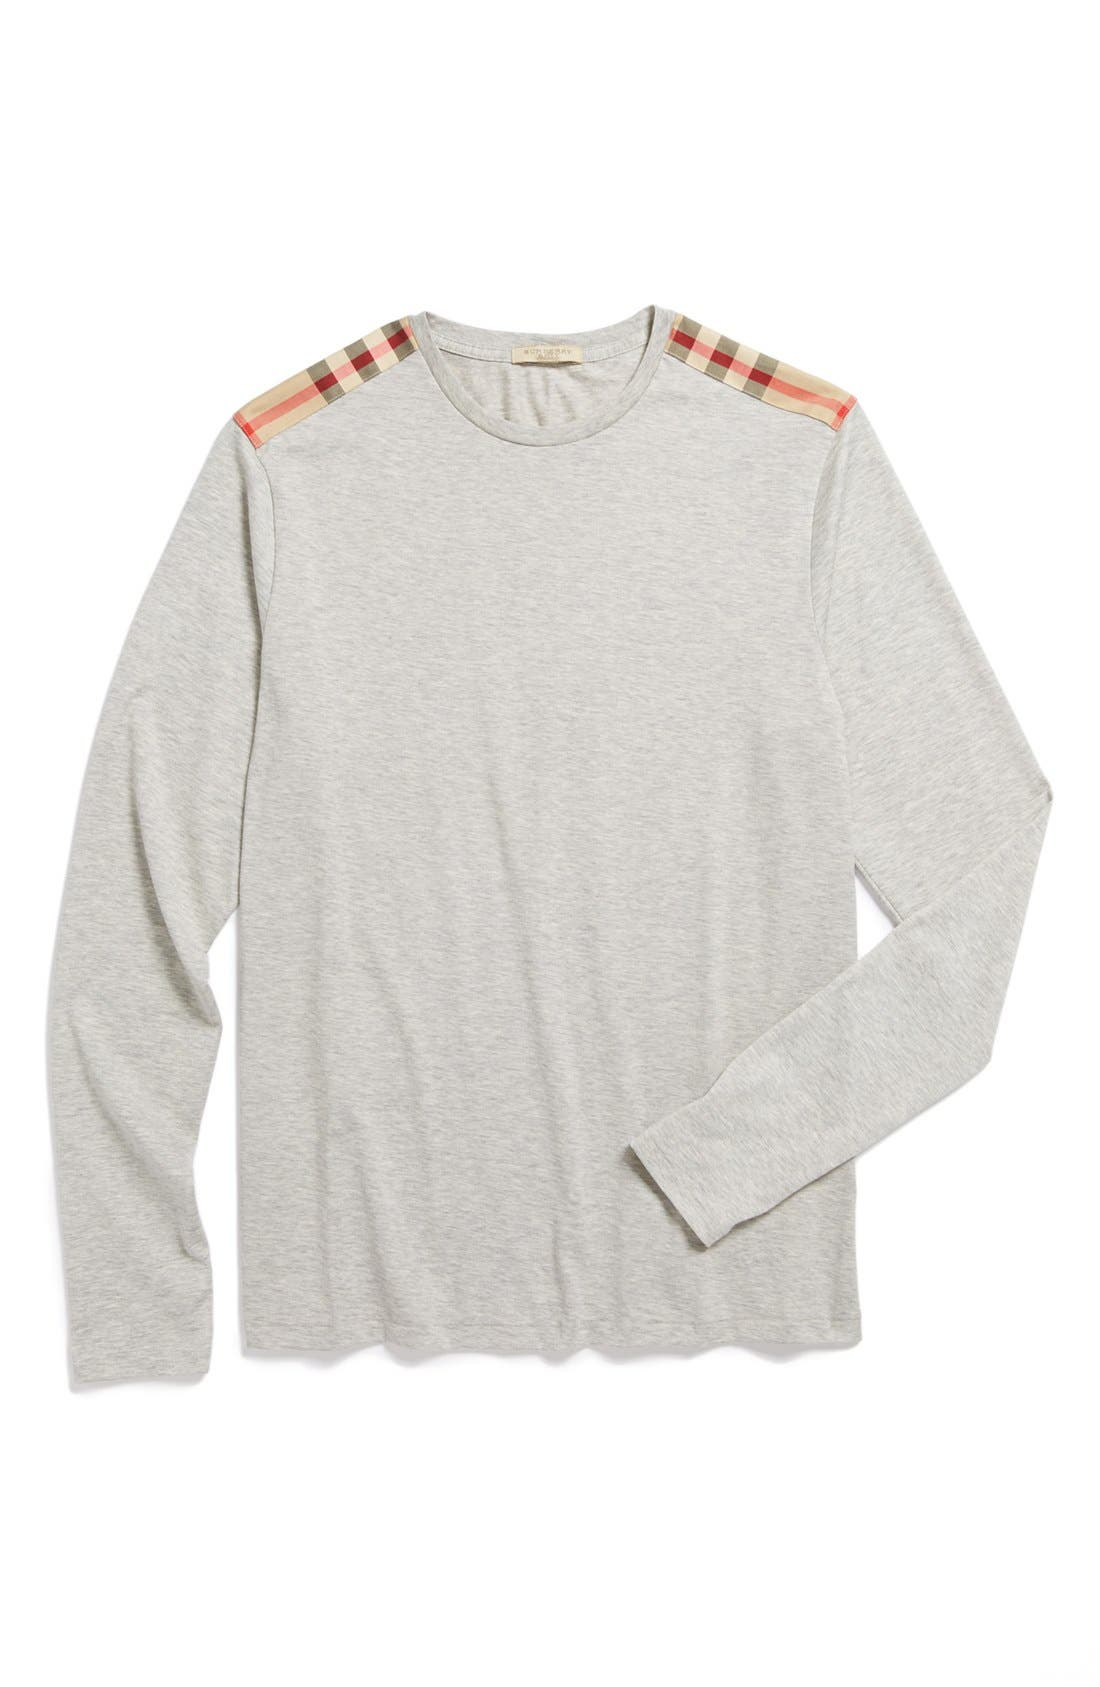 Alternate Image 1 Selected - Burberry Brit Check Trim Crewneck T-Shirt